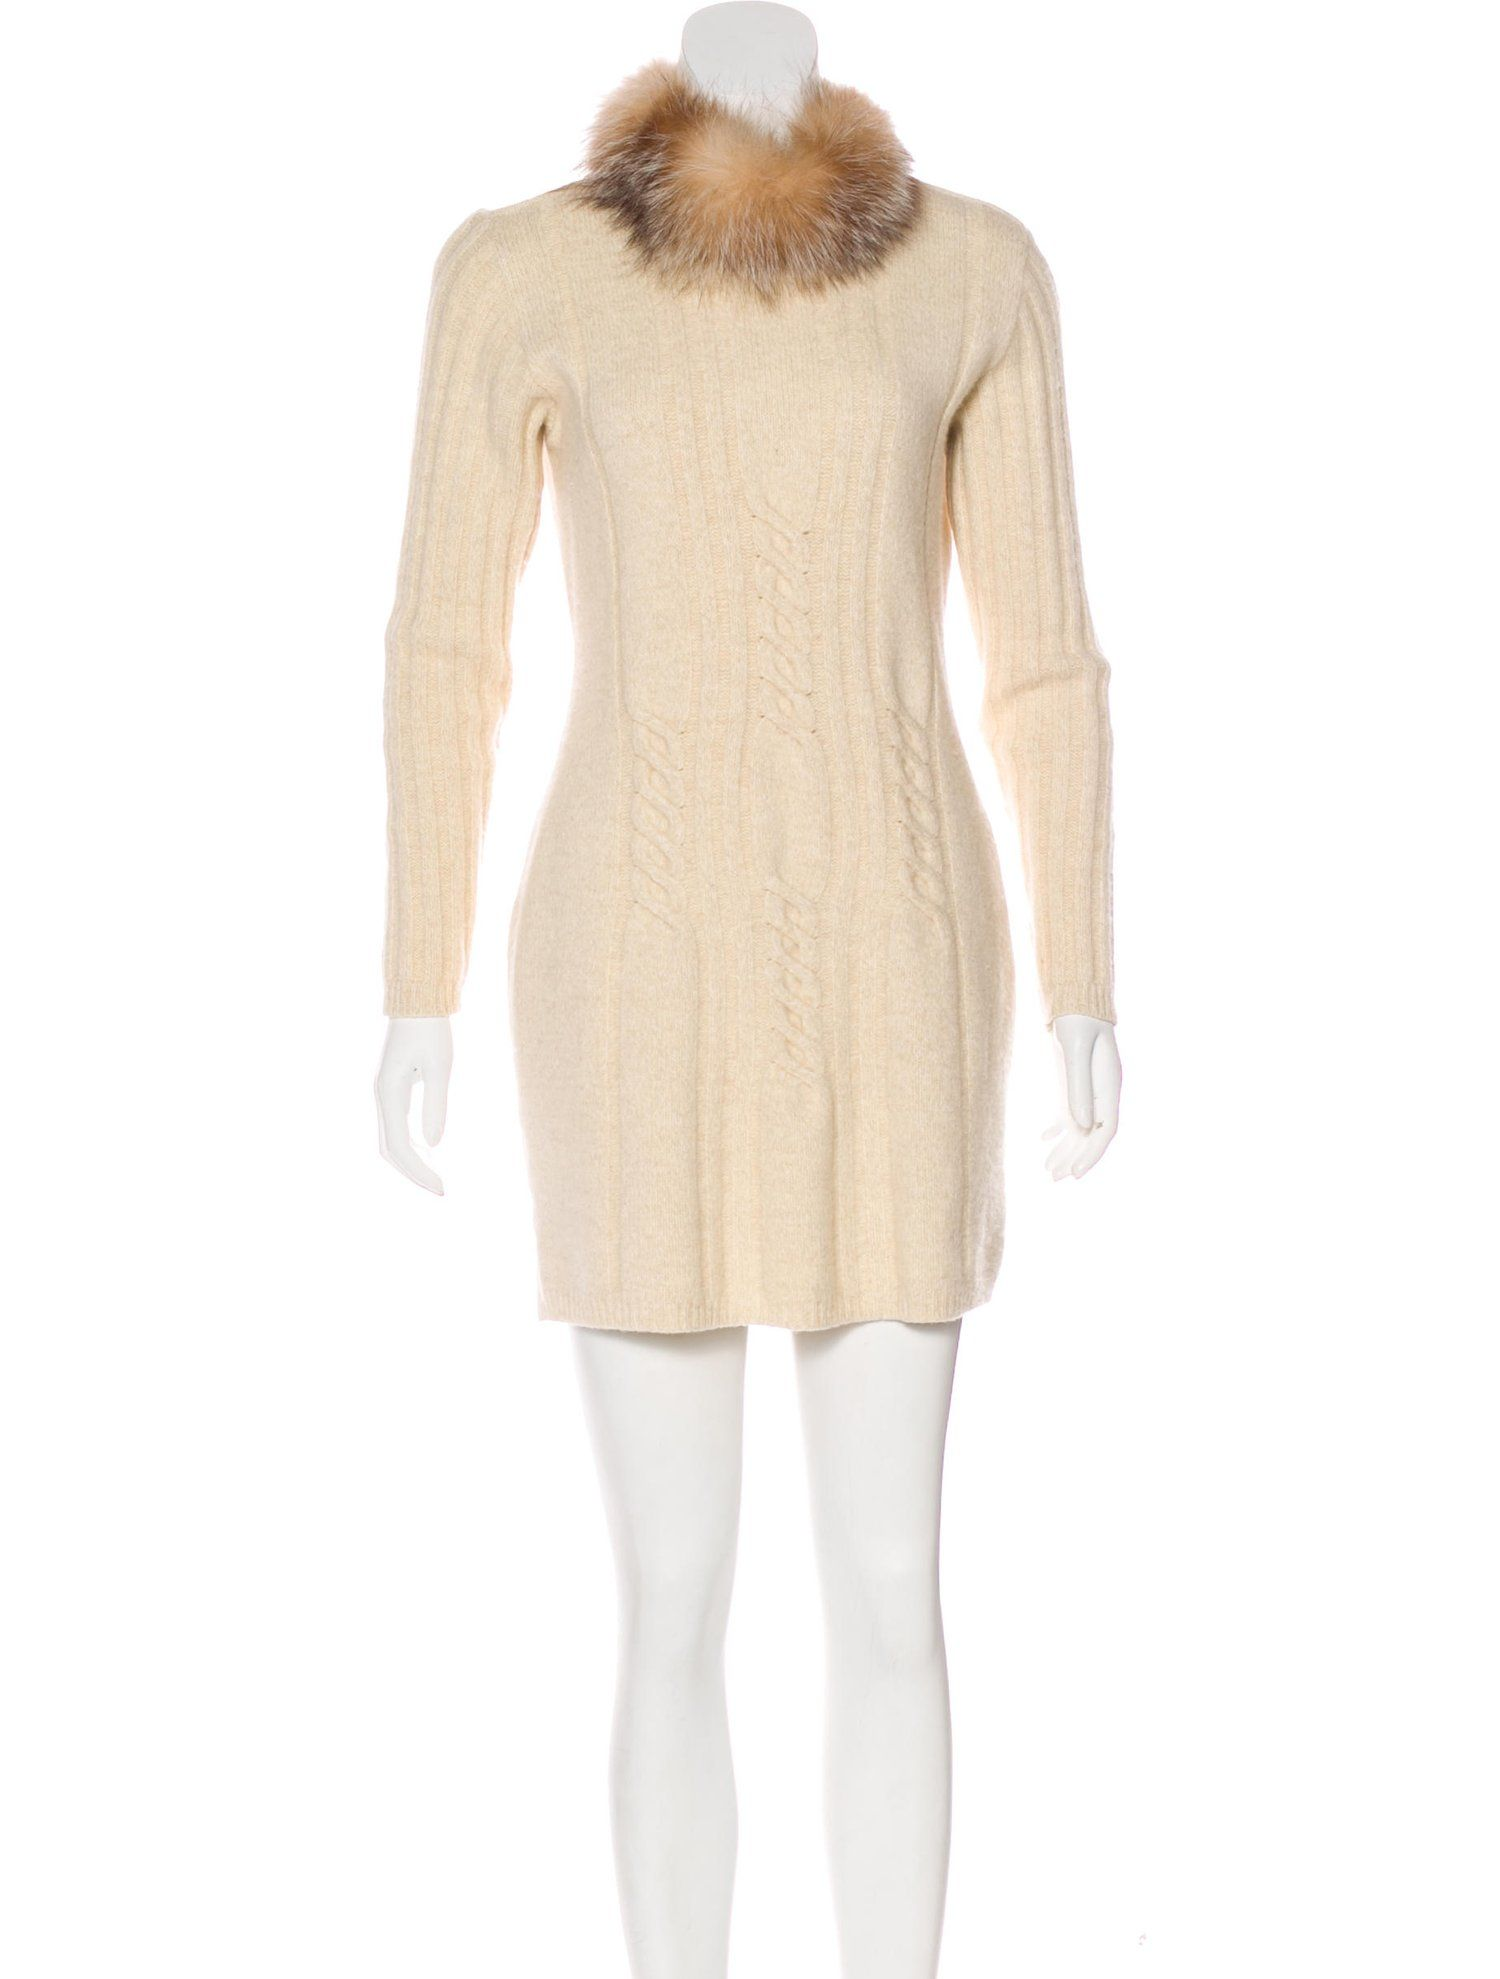 c6c60425db4 Fendi Fur-Trimmed Sweater Dress  SPONSORED  Fur  Fendi  Trimmed